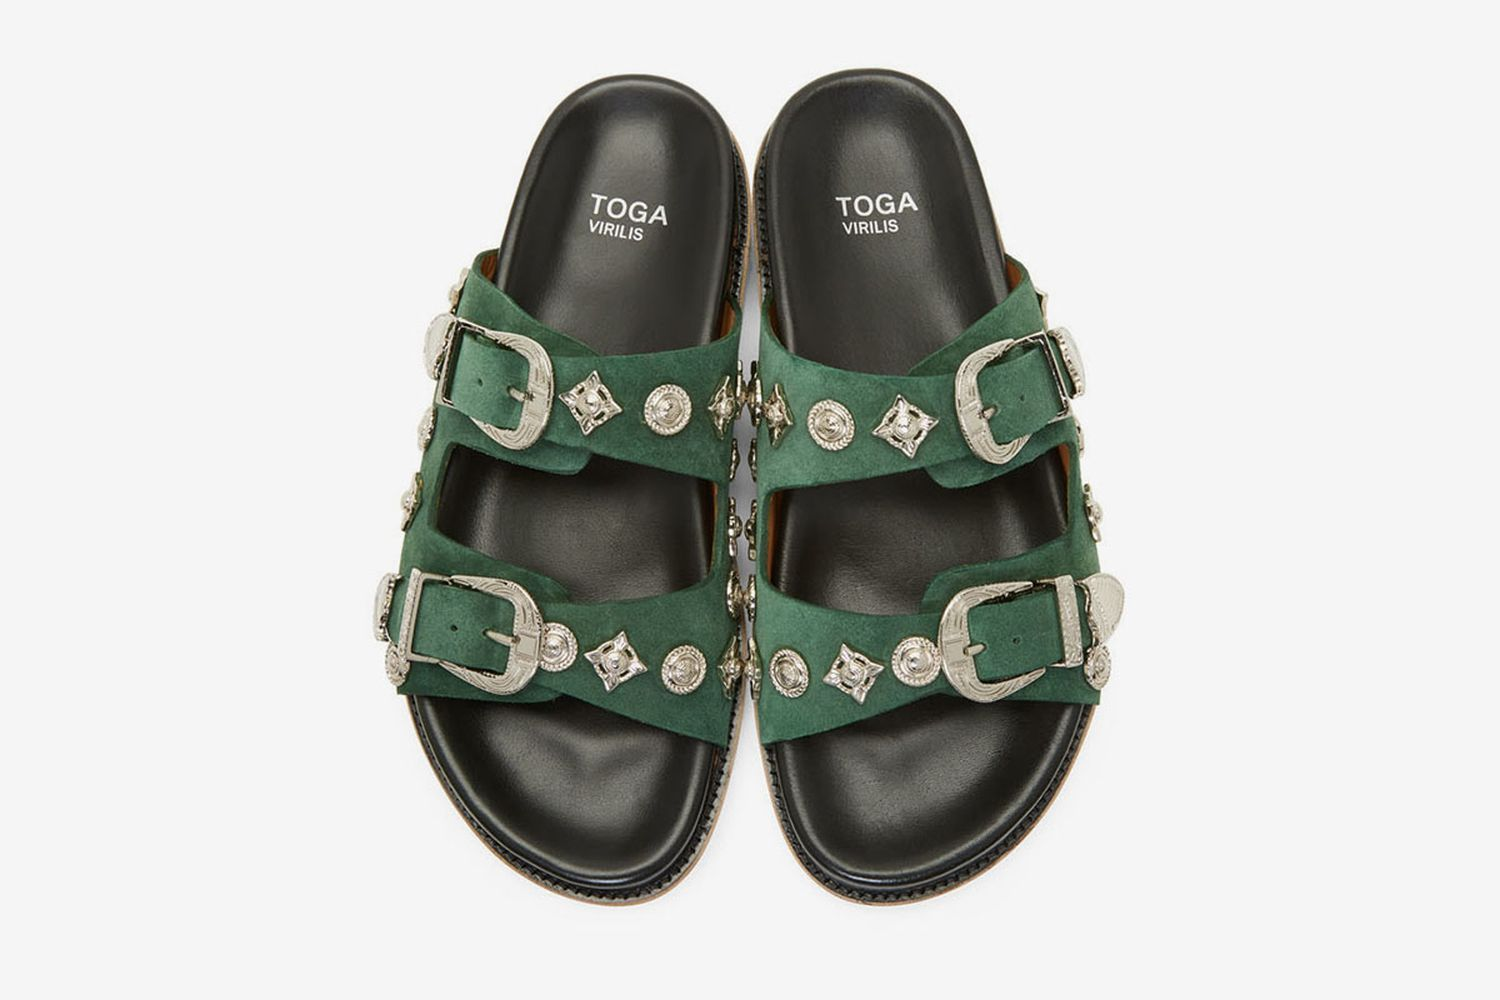 Suede Charm Sandals